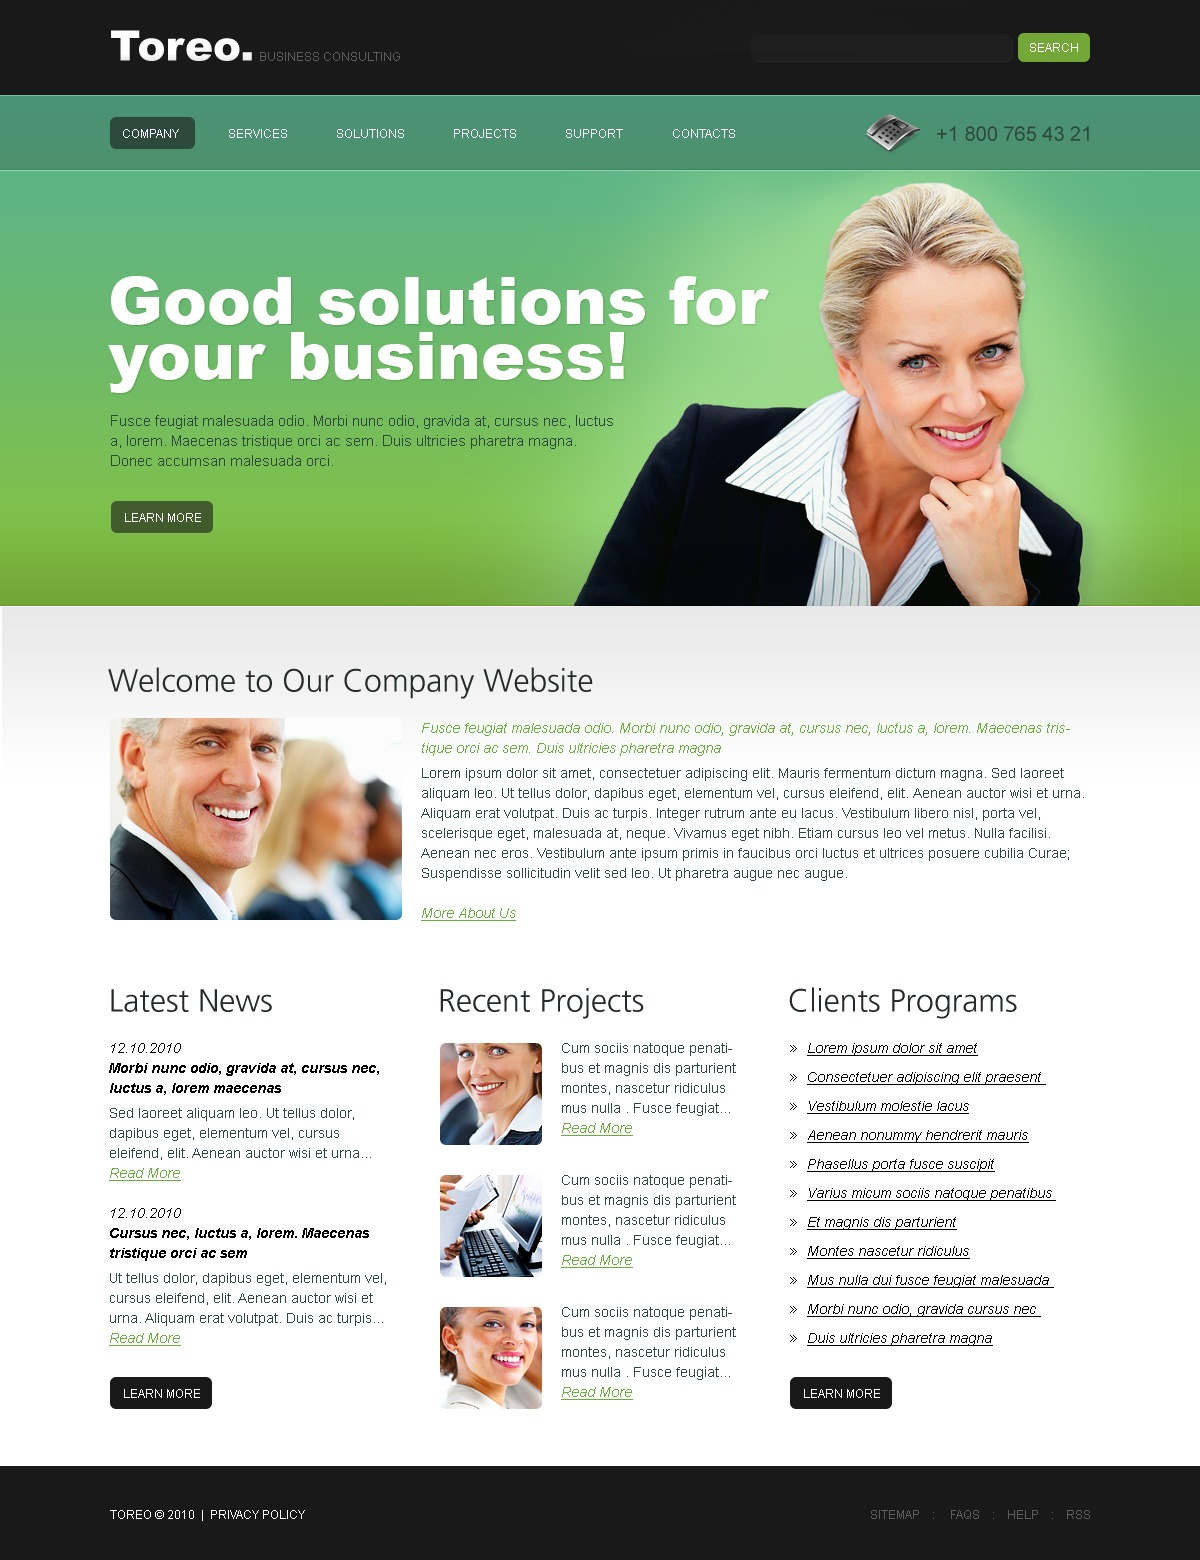 The Toreo Business Company PSD Design 54364, one of the best PSD templates of its kind (business, flash 8, wide), also known as toreo business company PSD template, corporate solutions PSD template, innovations PSD template, contacts PSD template, service PSD template, support PSD template, information dealer PSD template, stocks PSD template, team PSD template, success PSD template, money PSD template, marketing PSD template, director PSD template, manager PSD template, analytics PSD template, planning PSD template, limited PSD template, office PSD template, sales and related with toreo business company, corporate solutions, innovations, contacts, service, support, information dealer, stocks, team, success, money, marketing, director, manager, analytics, planning, limited, office, sales, etc.